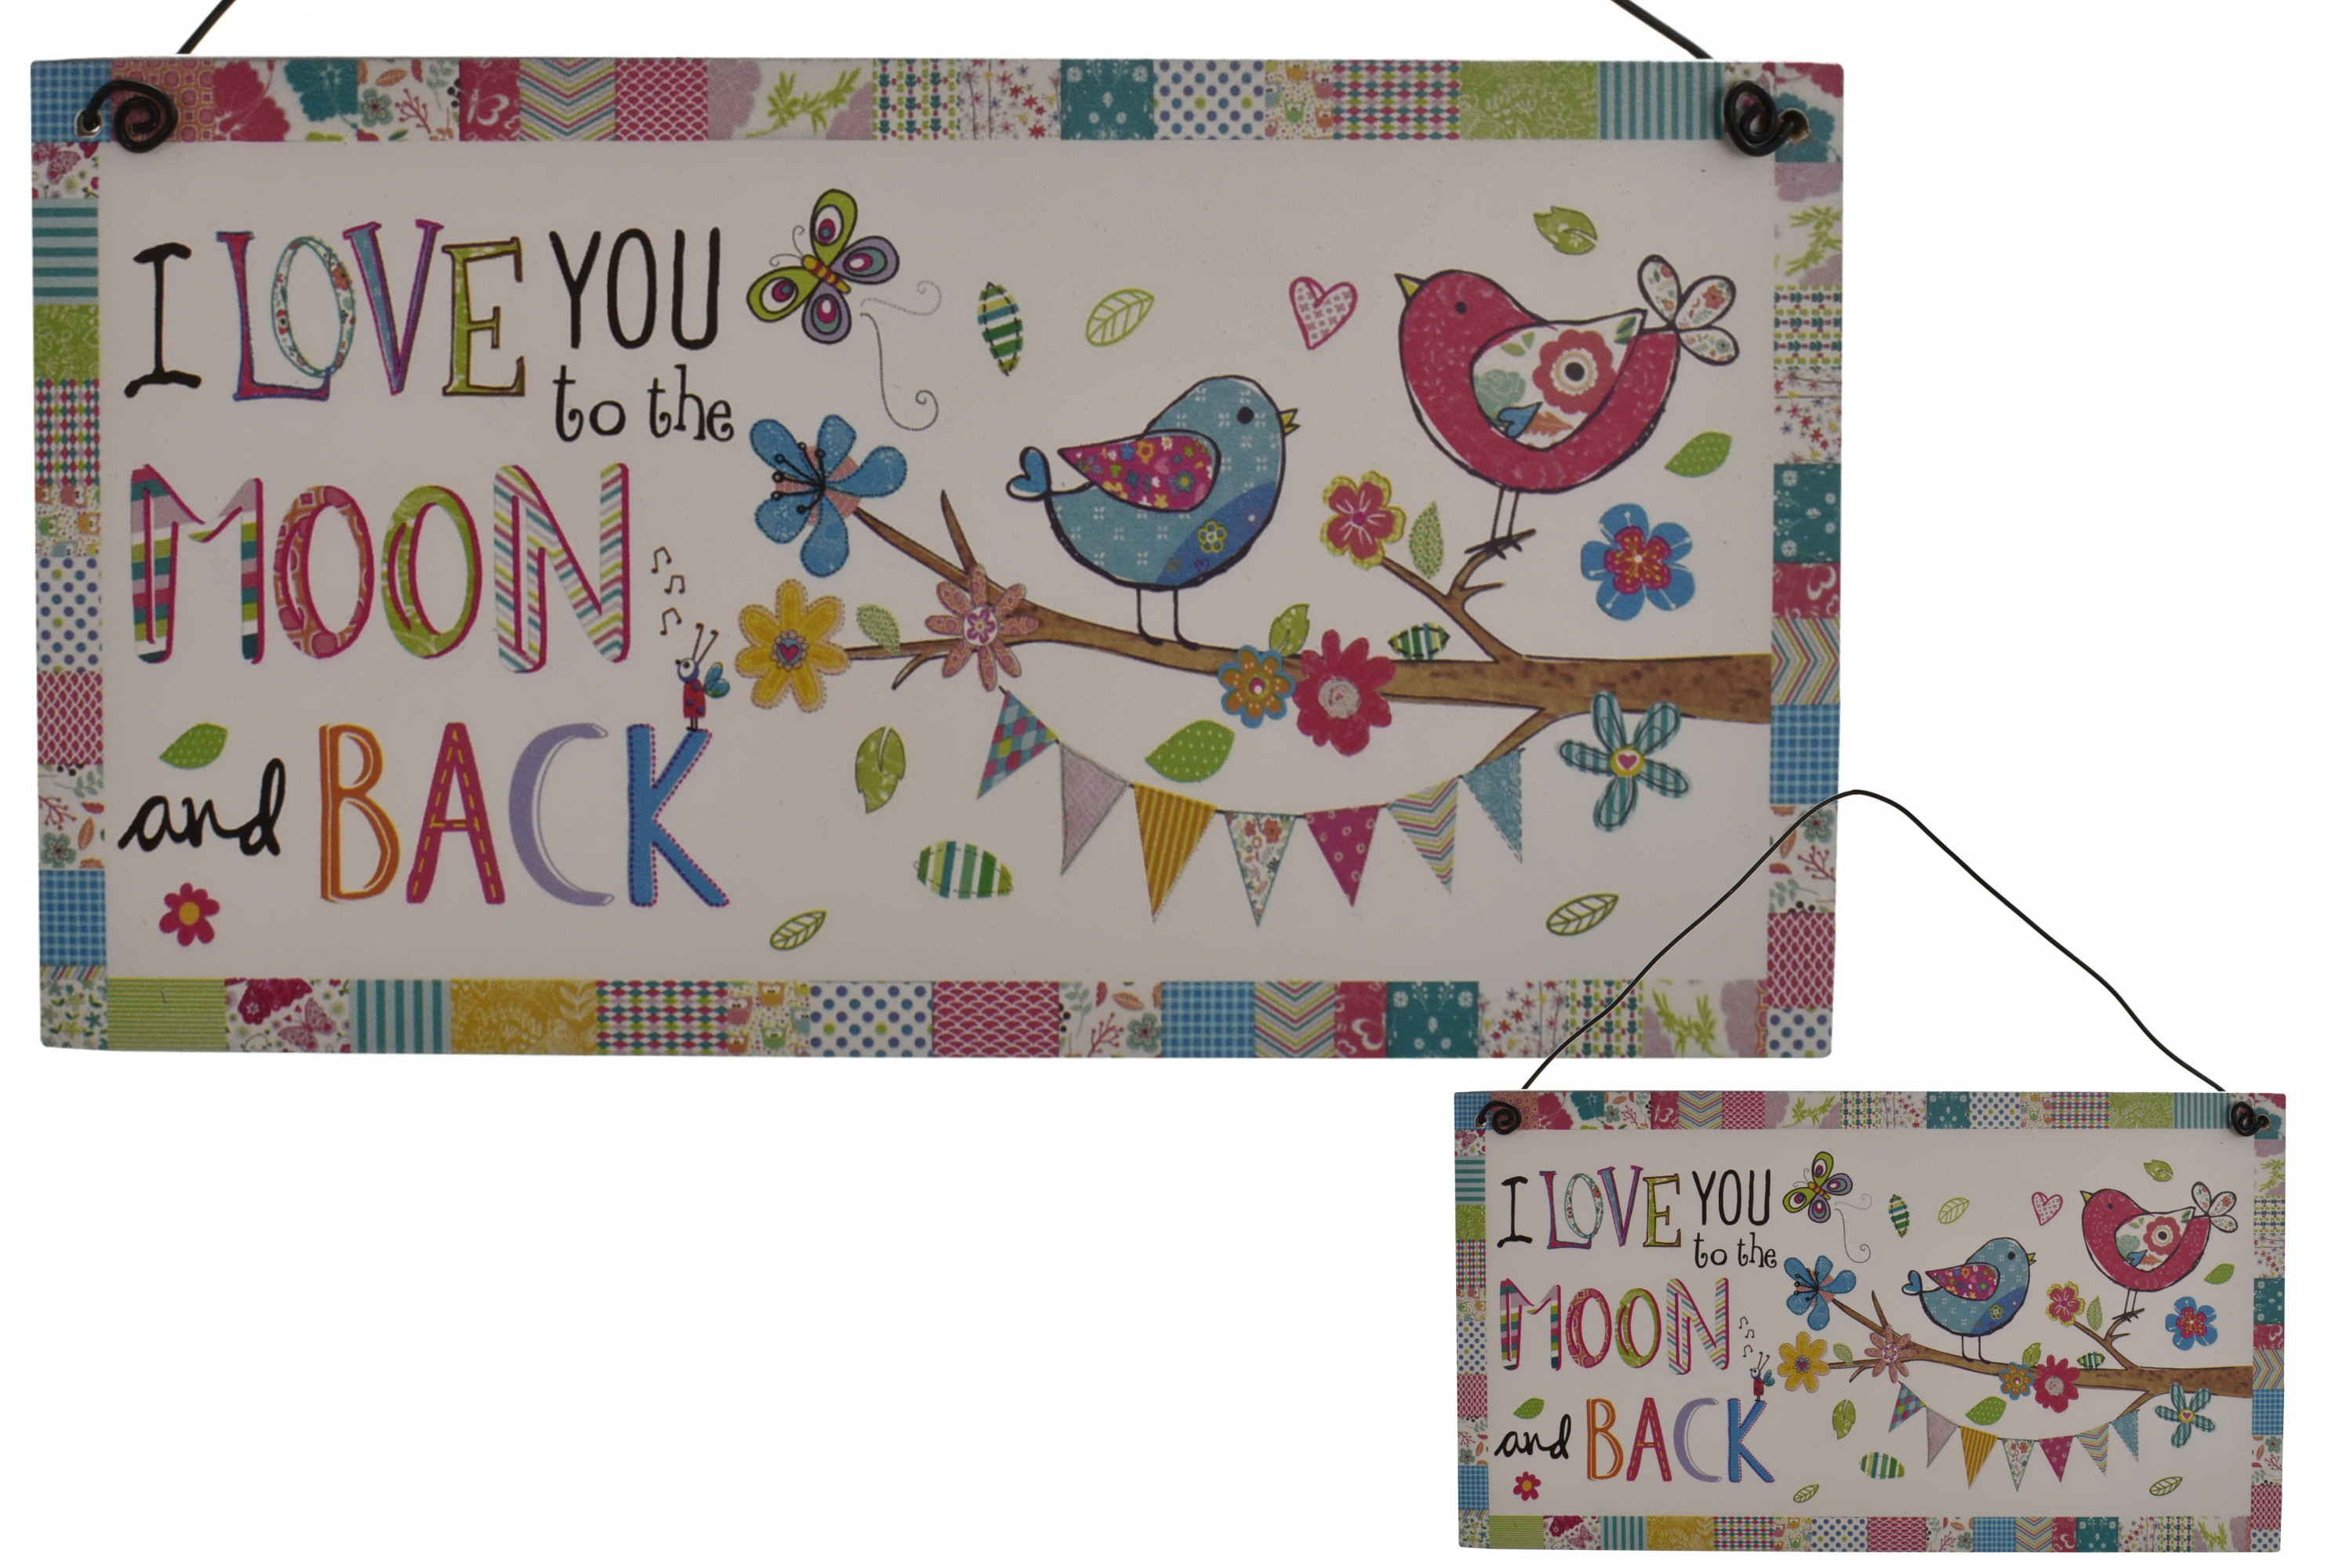 10 x 20cm Wooden Hanging Sign Moon & Back